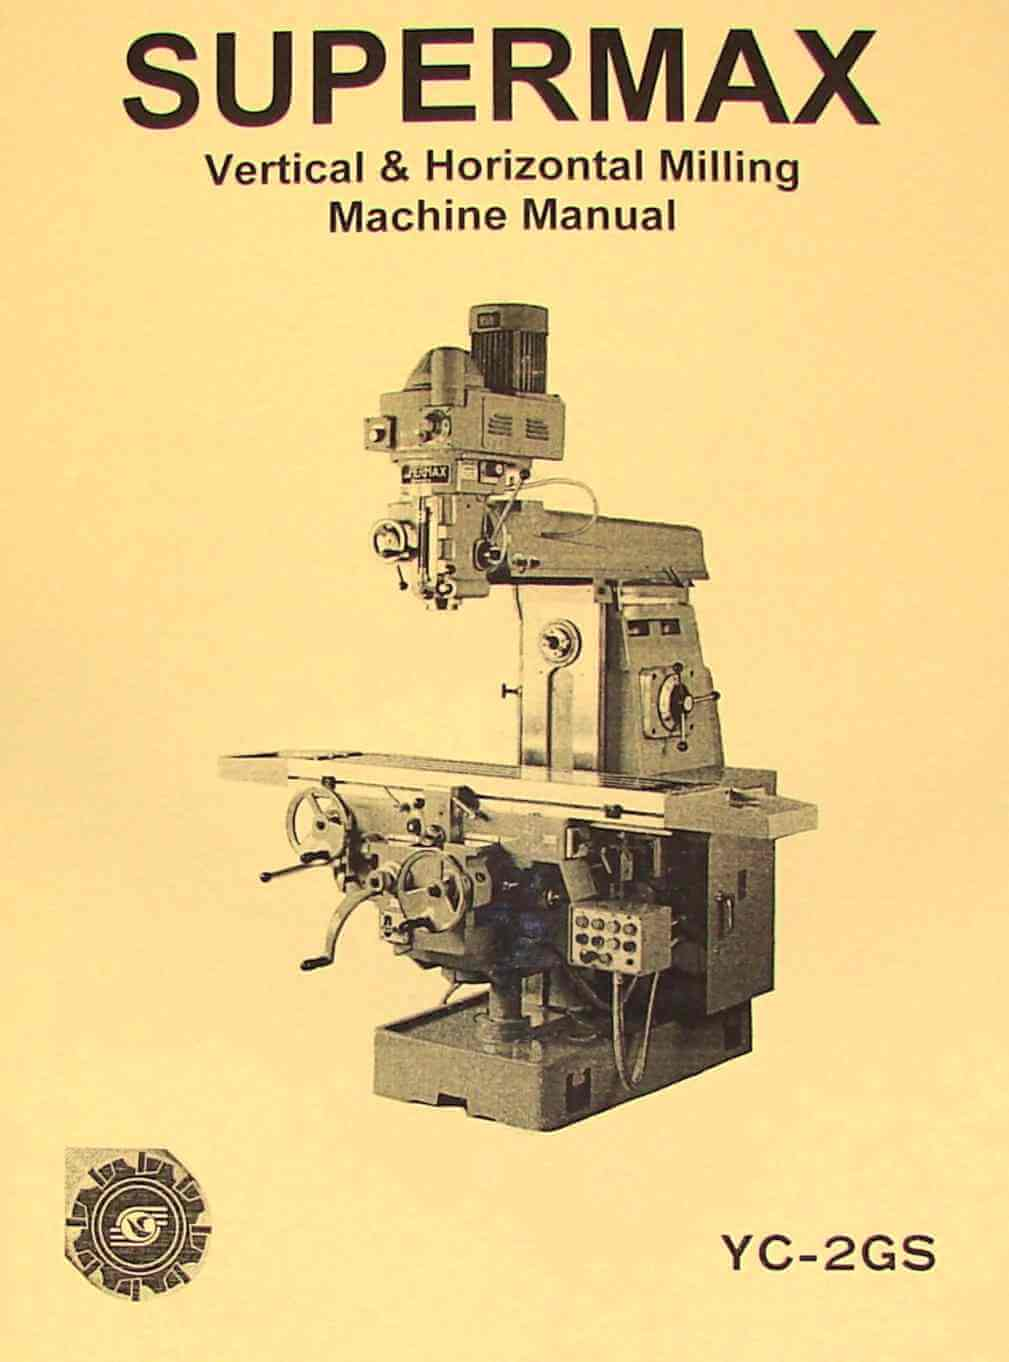 SUPERMAX YC-2GS Vertical/Horizontal Milling Machine Operator's & Parts  Manual | Ozark Tool Manuals & Books